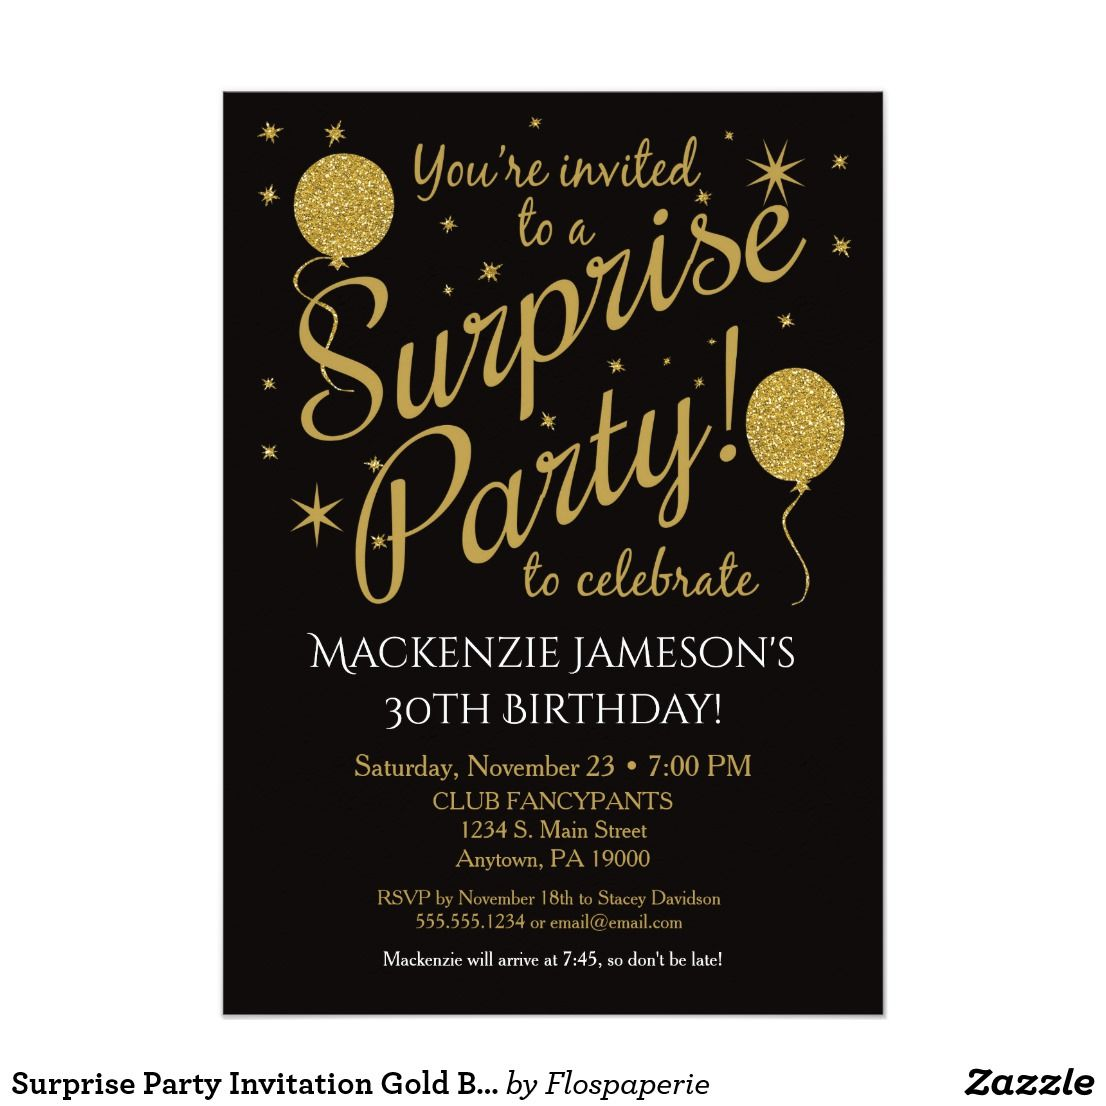 Surprise Party Invitation Gold Balloon Birthday Zazzle Com Surprise Party Invitations Surprise Birthday Invitations Surprise Birthday Party Invitations